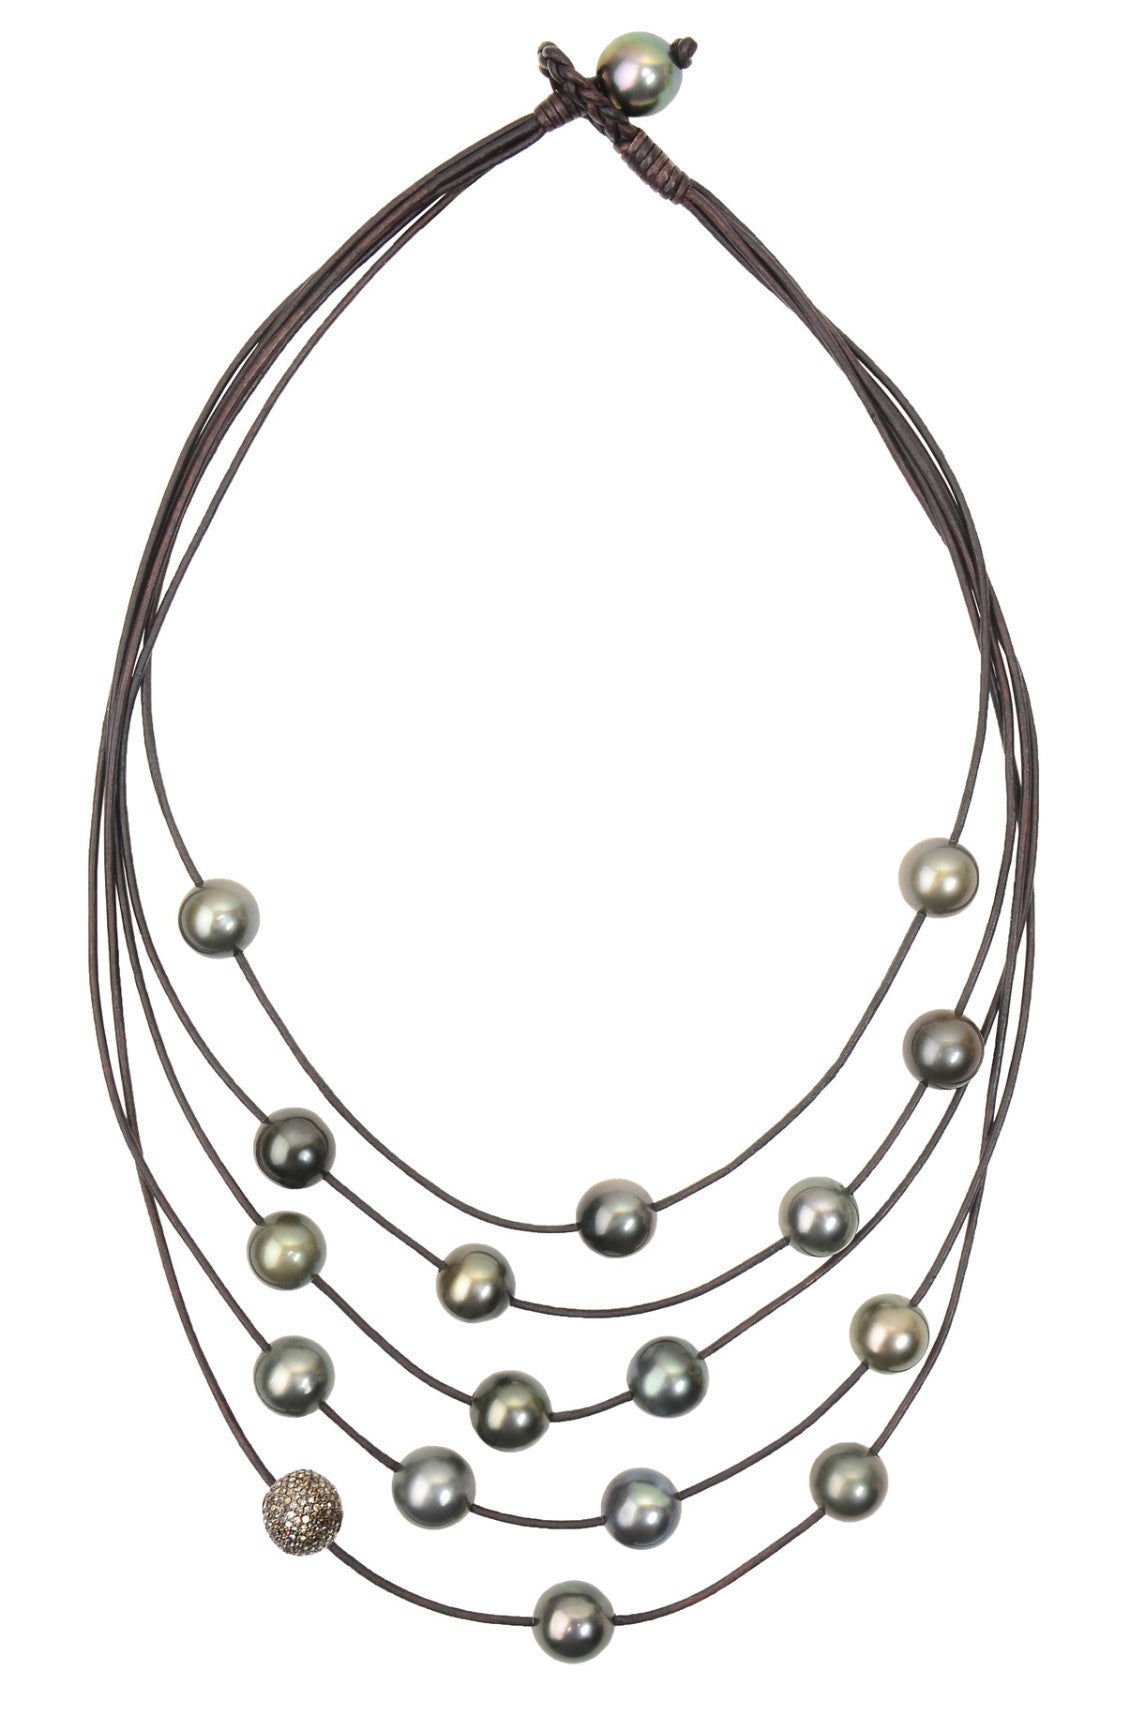 Constellation Necklace, Pavé and Tahitian Pearls - Hottest Designer Pearl and Leather Jewelry | VINCENT PEACH